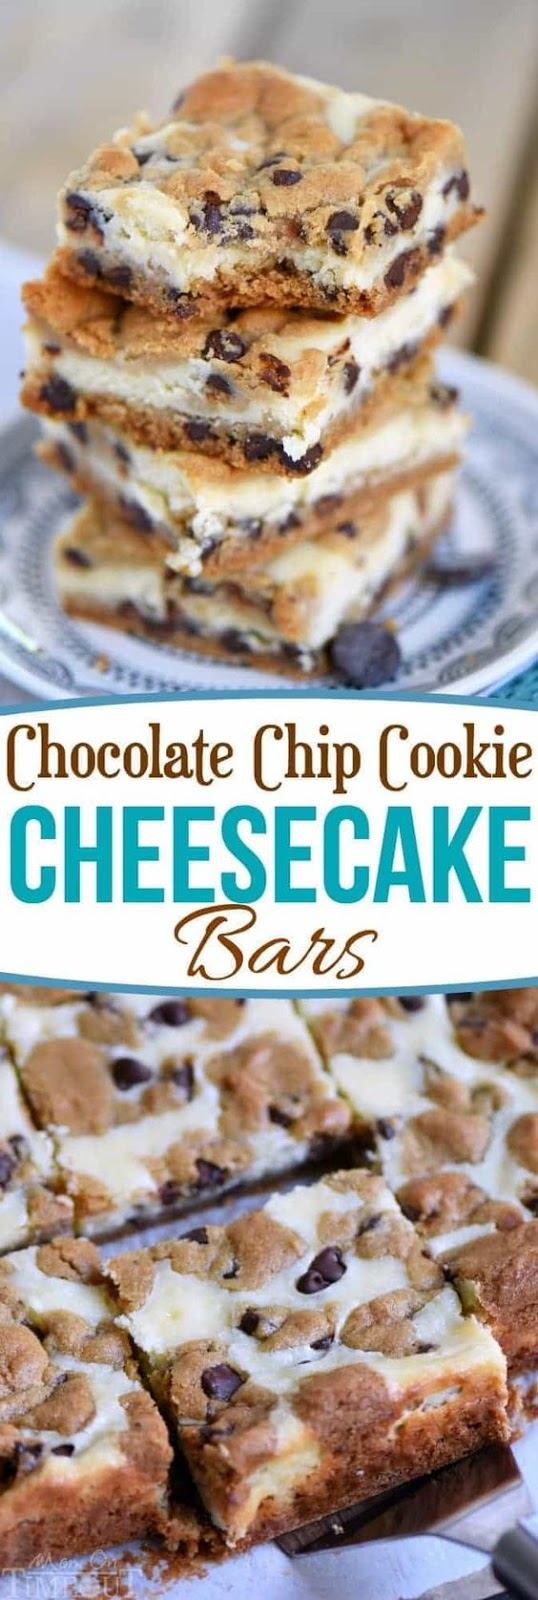 These easy Chocolate Chip Cookie Cheesecake Bars are made with just five ingredients! This easy dessert recipe will satisfy all your cravings and is PERFECT for parties, bake sales, cookie trays and more! // Mom On Timeout #desserts #dessert #baking #cheesecake #chocolate #chocolatechipcookies #bars #sweets #cookies #easy #recipe #recipes #momontimeout